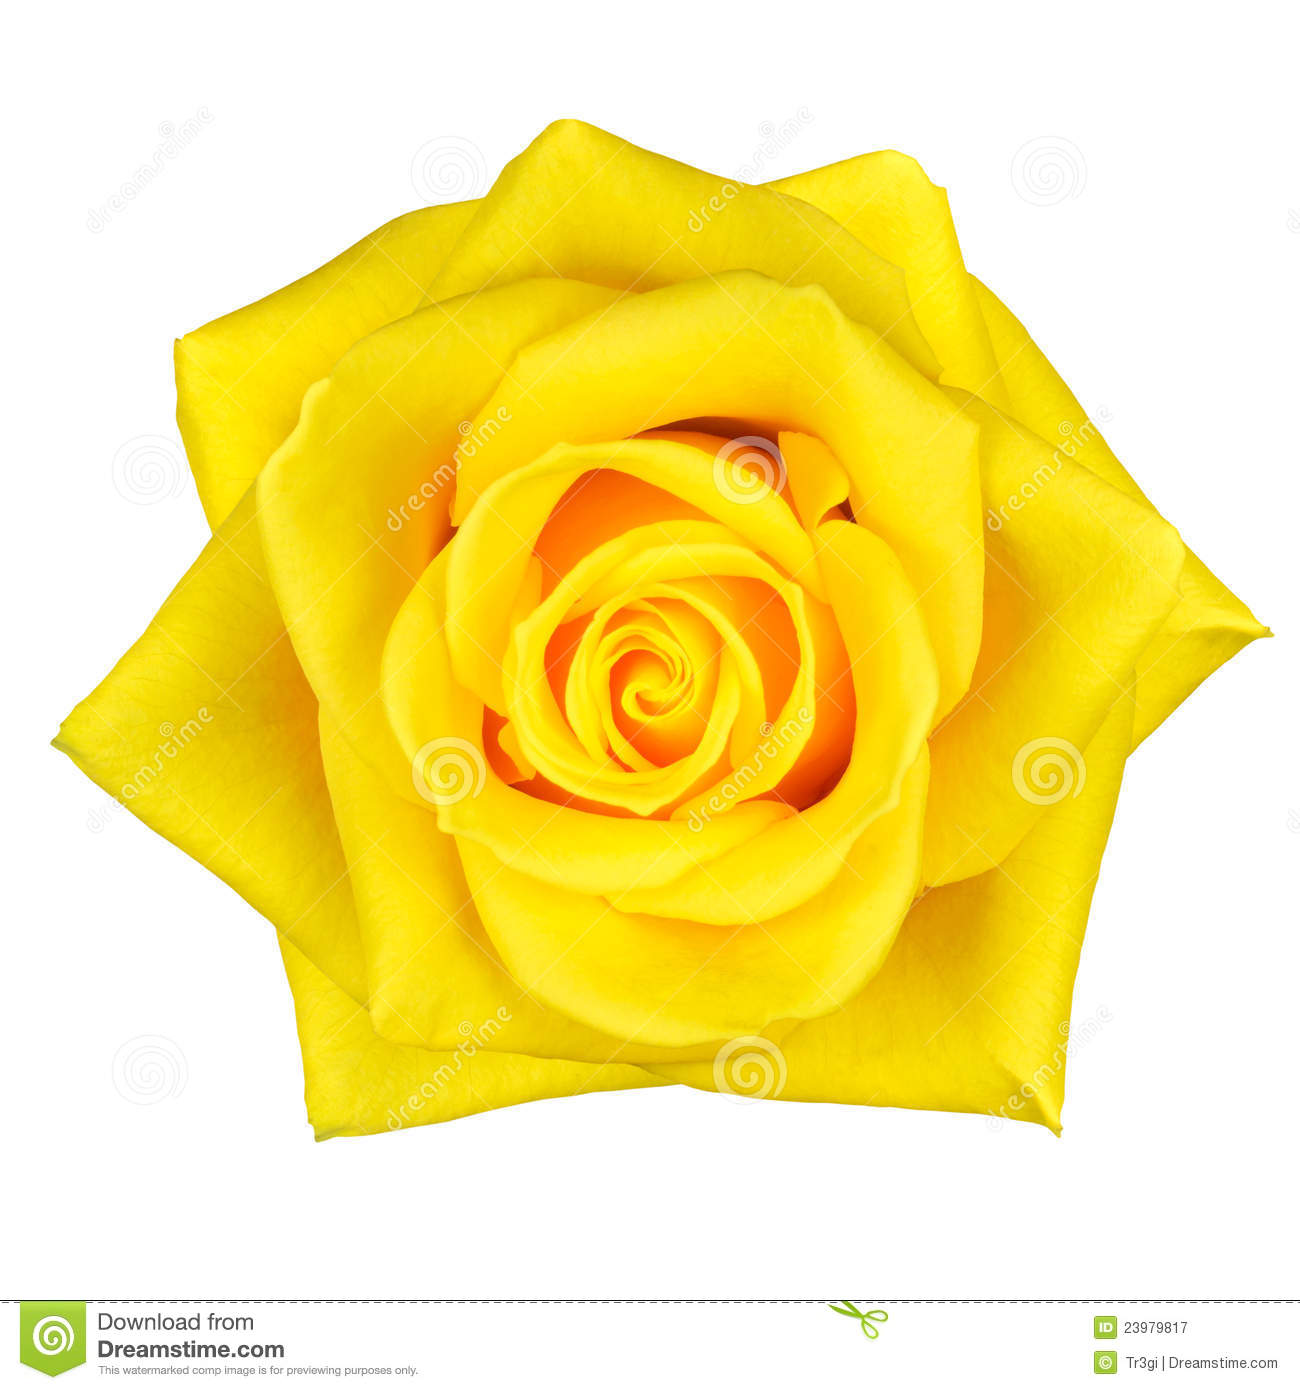 Texas Yellow Rose Clipart.